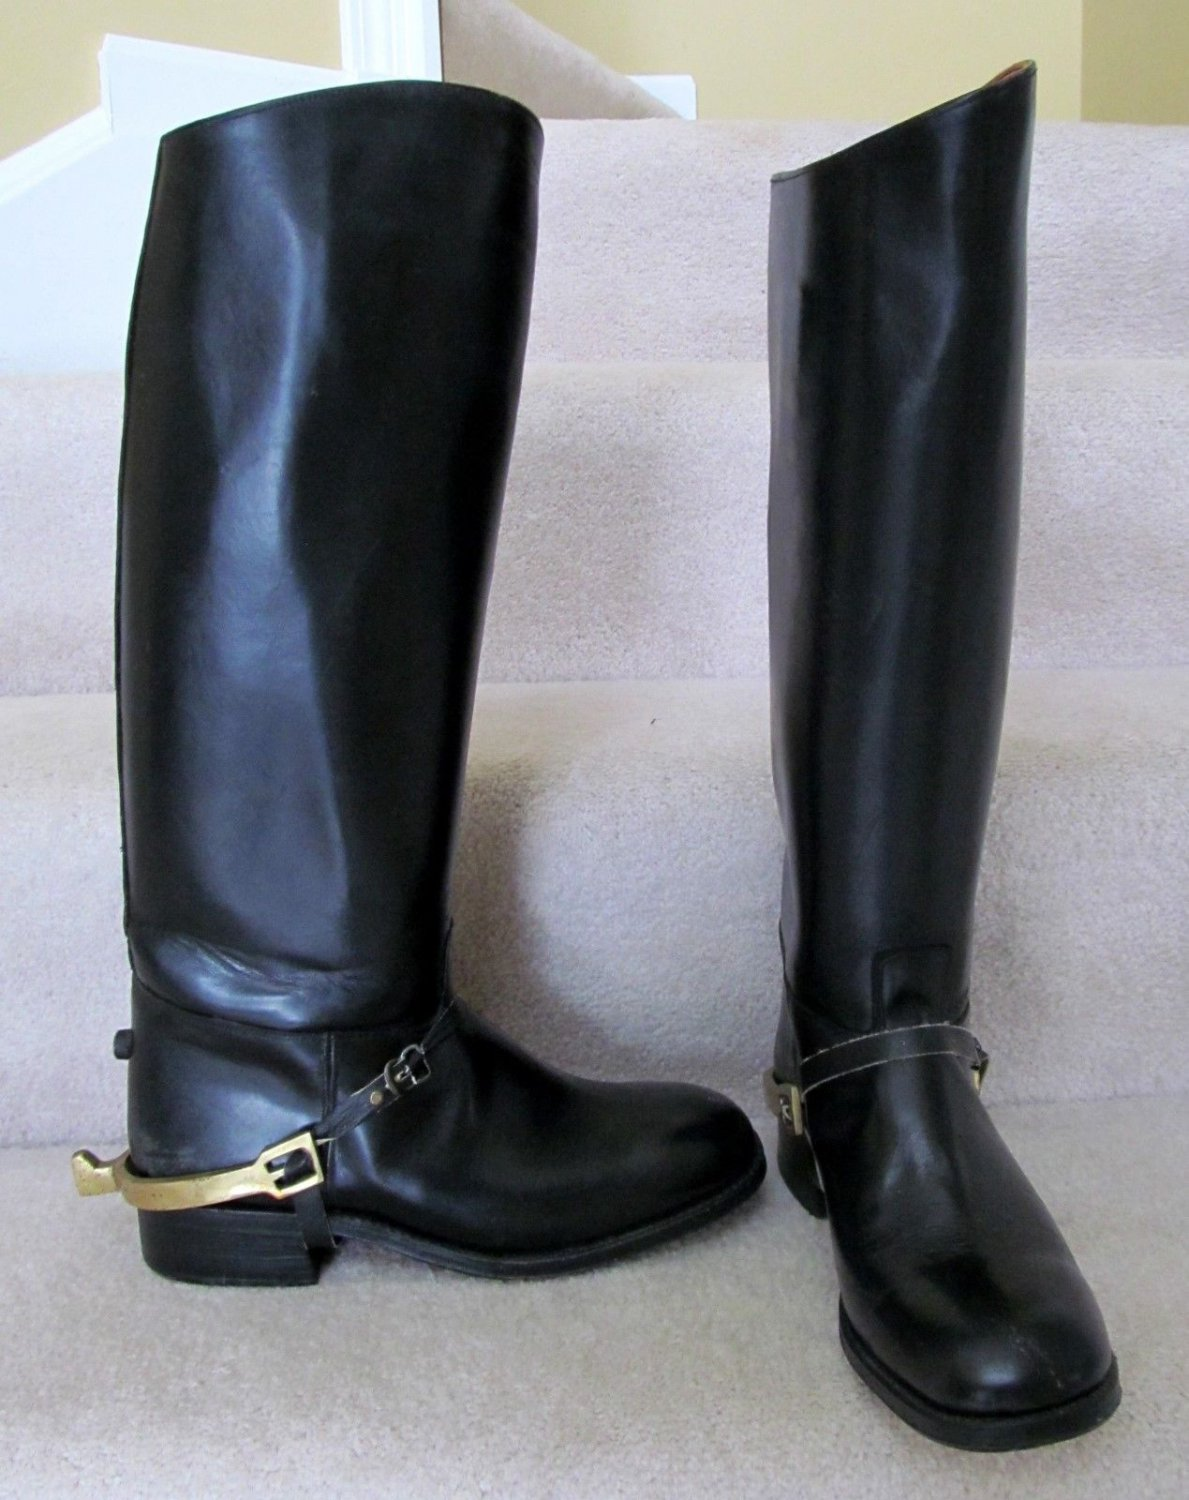 SOLD! - Vintage French Leather Boots Riding Boots 11 Equestrian WITH BRASS SPURS france